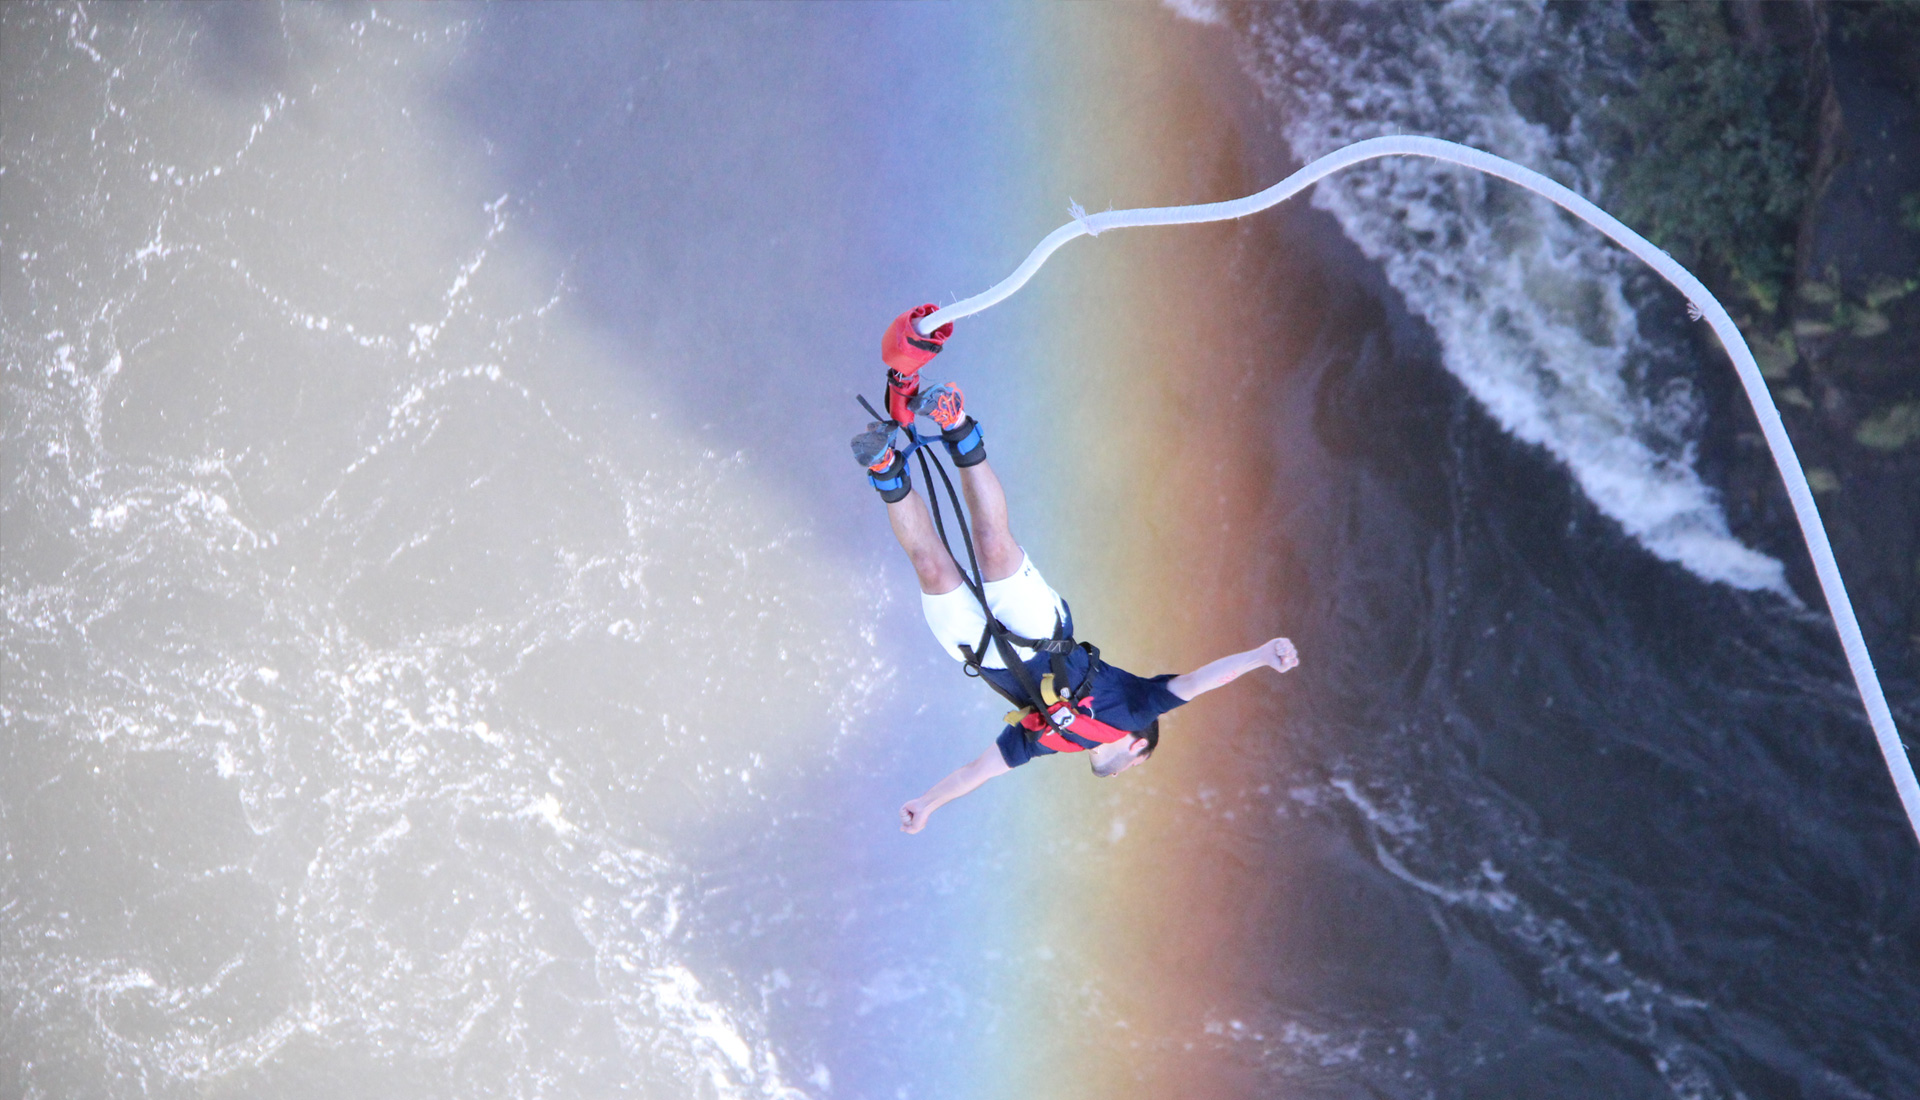 Shearwater Bungee Victoria Falls